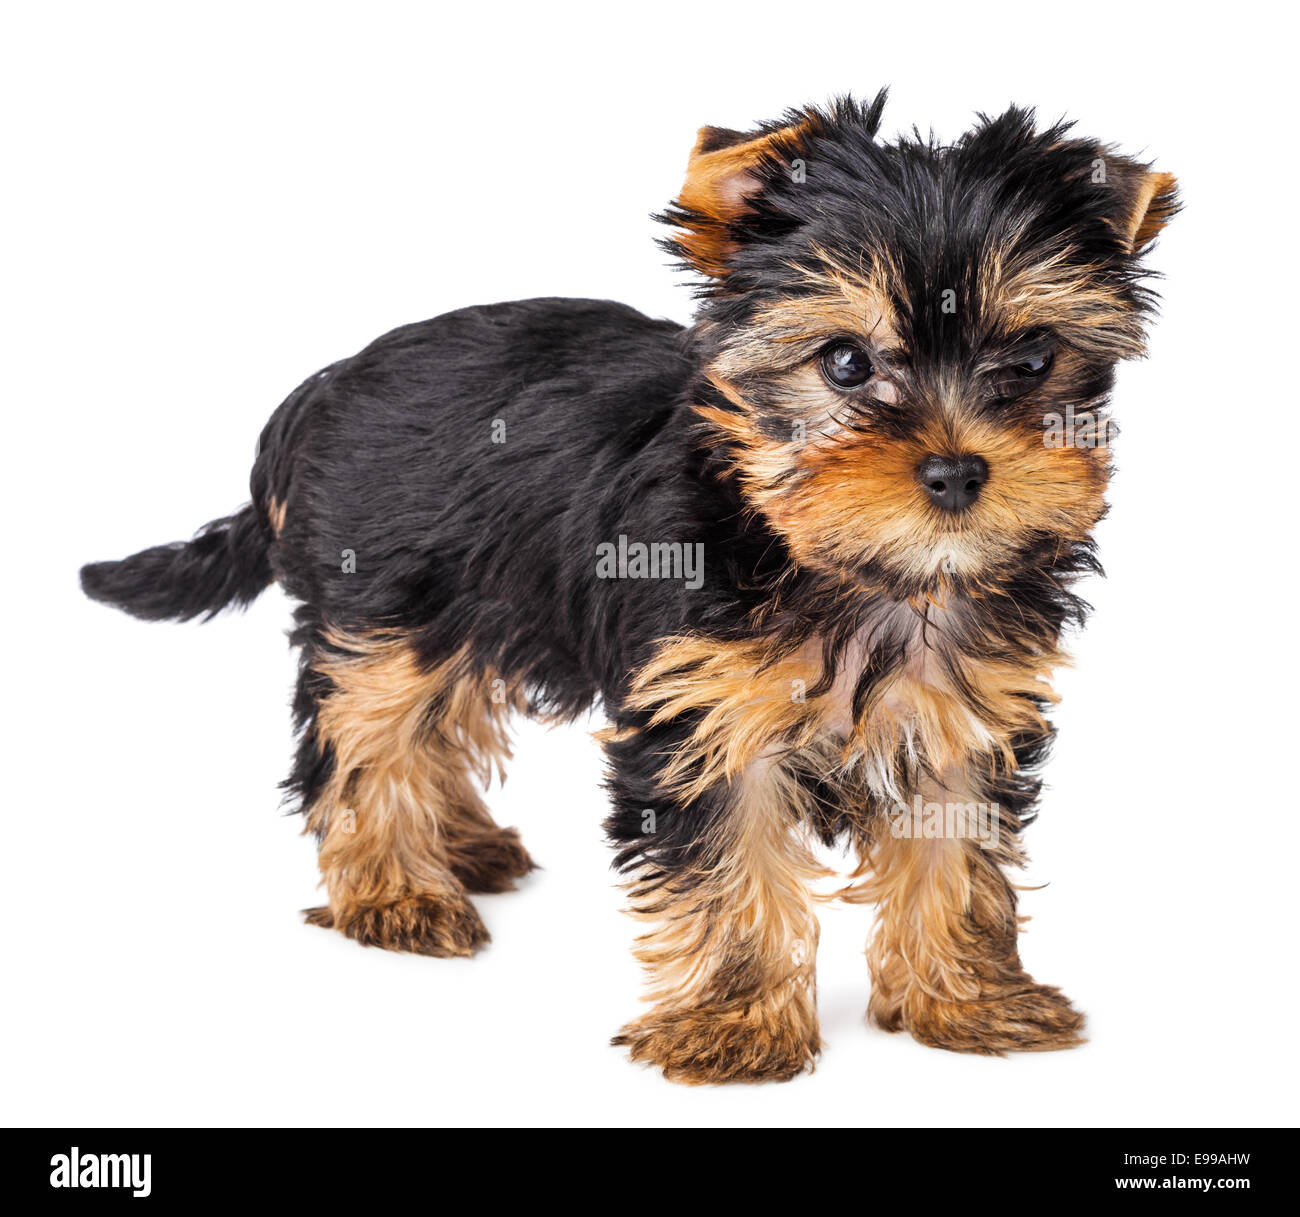 Yorkshire Terrier Puppy Standing 2 Months Old Isolated On White